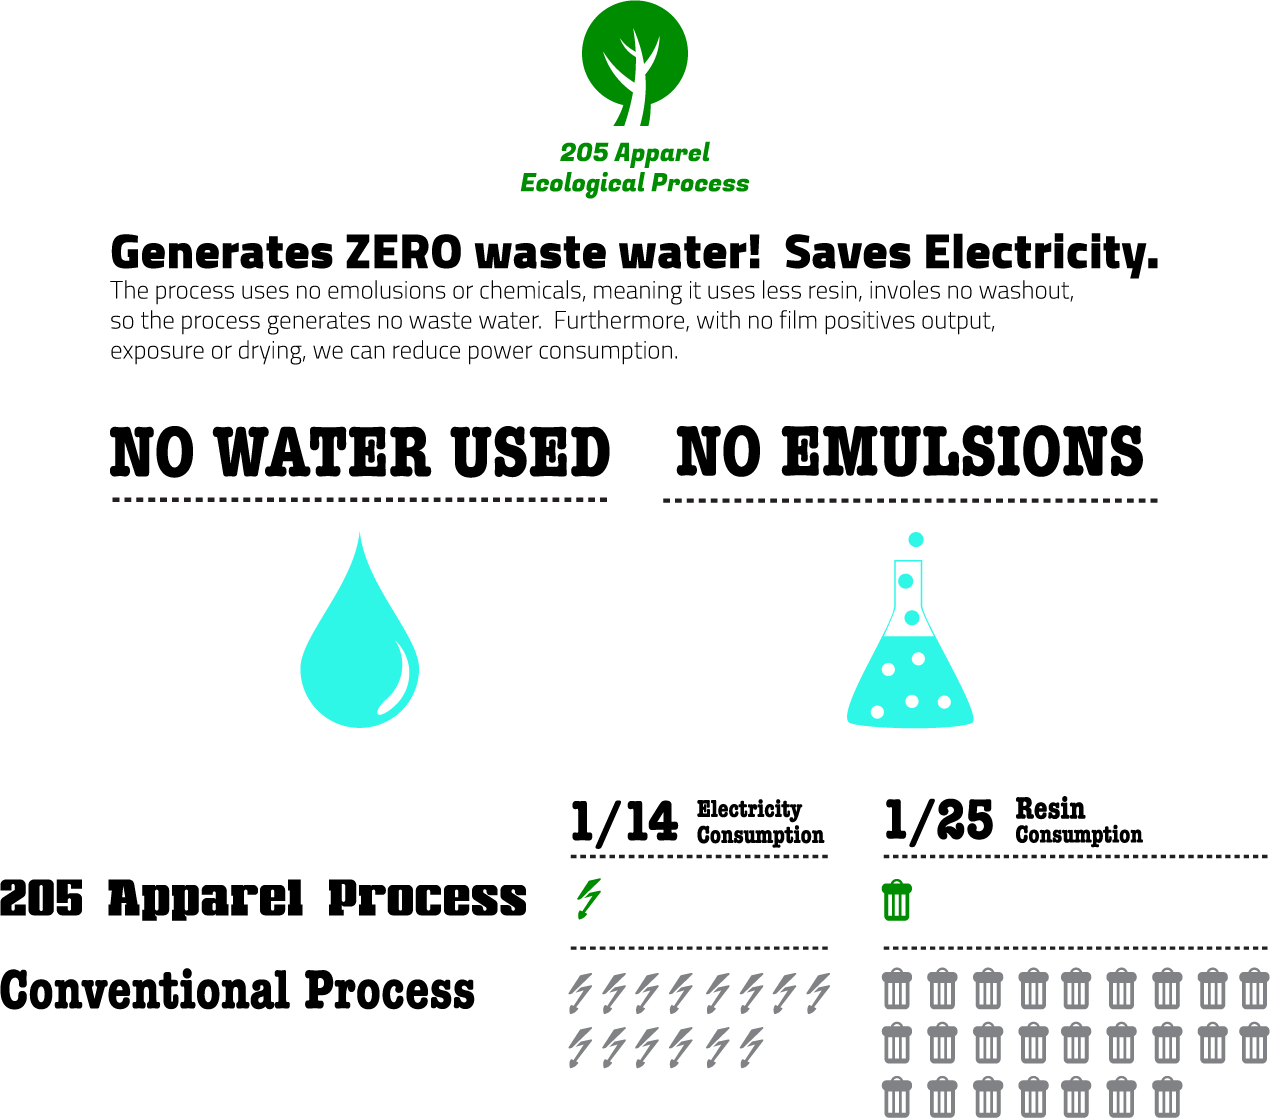 205-apparel-ecological-process-info-graph.png